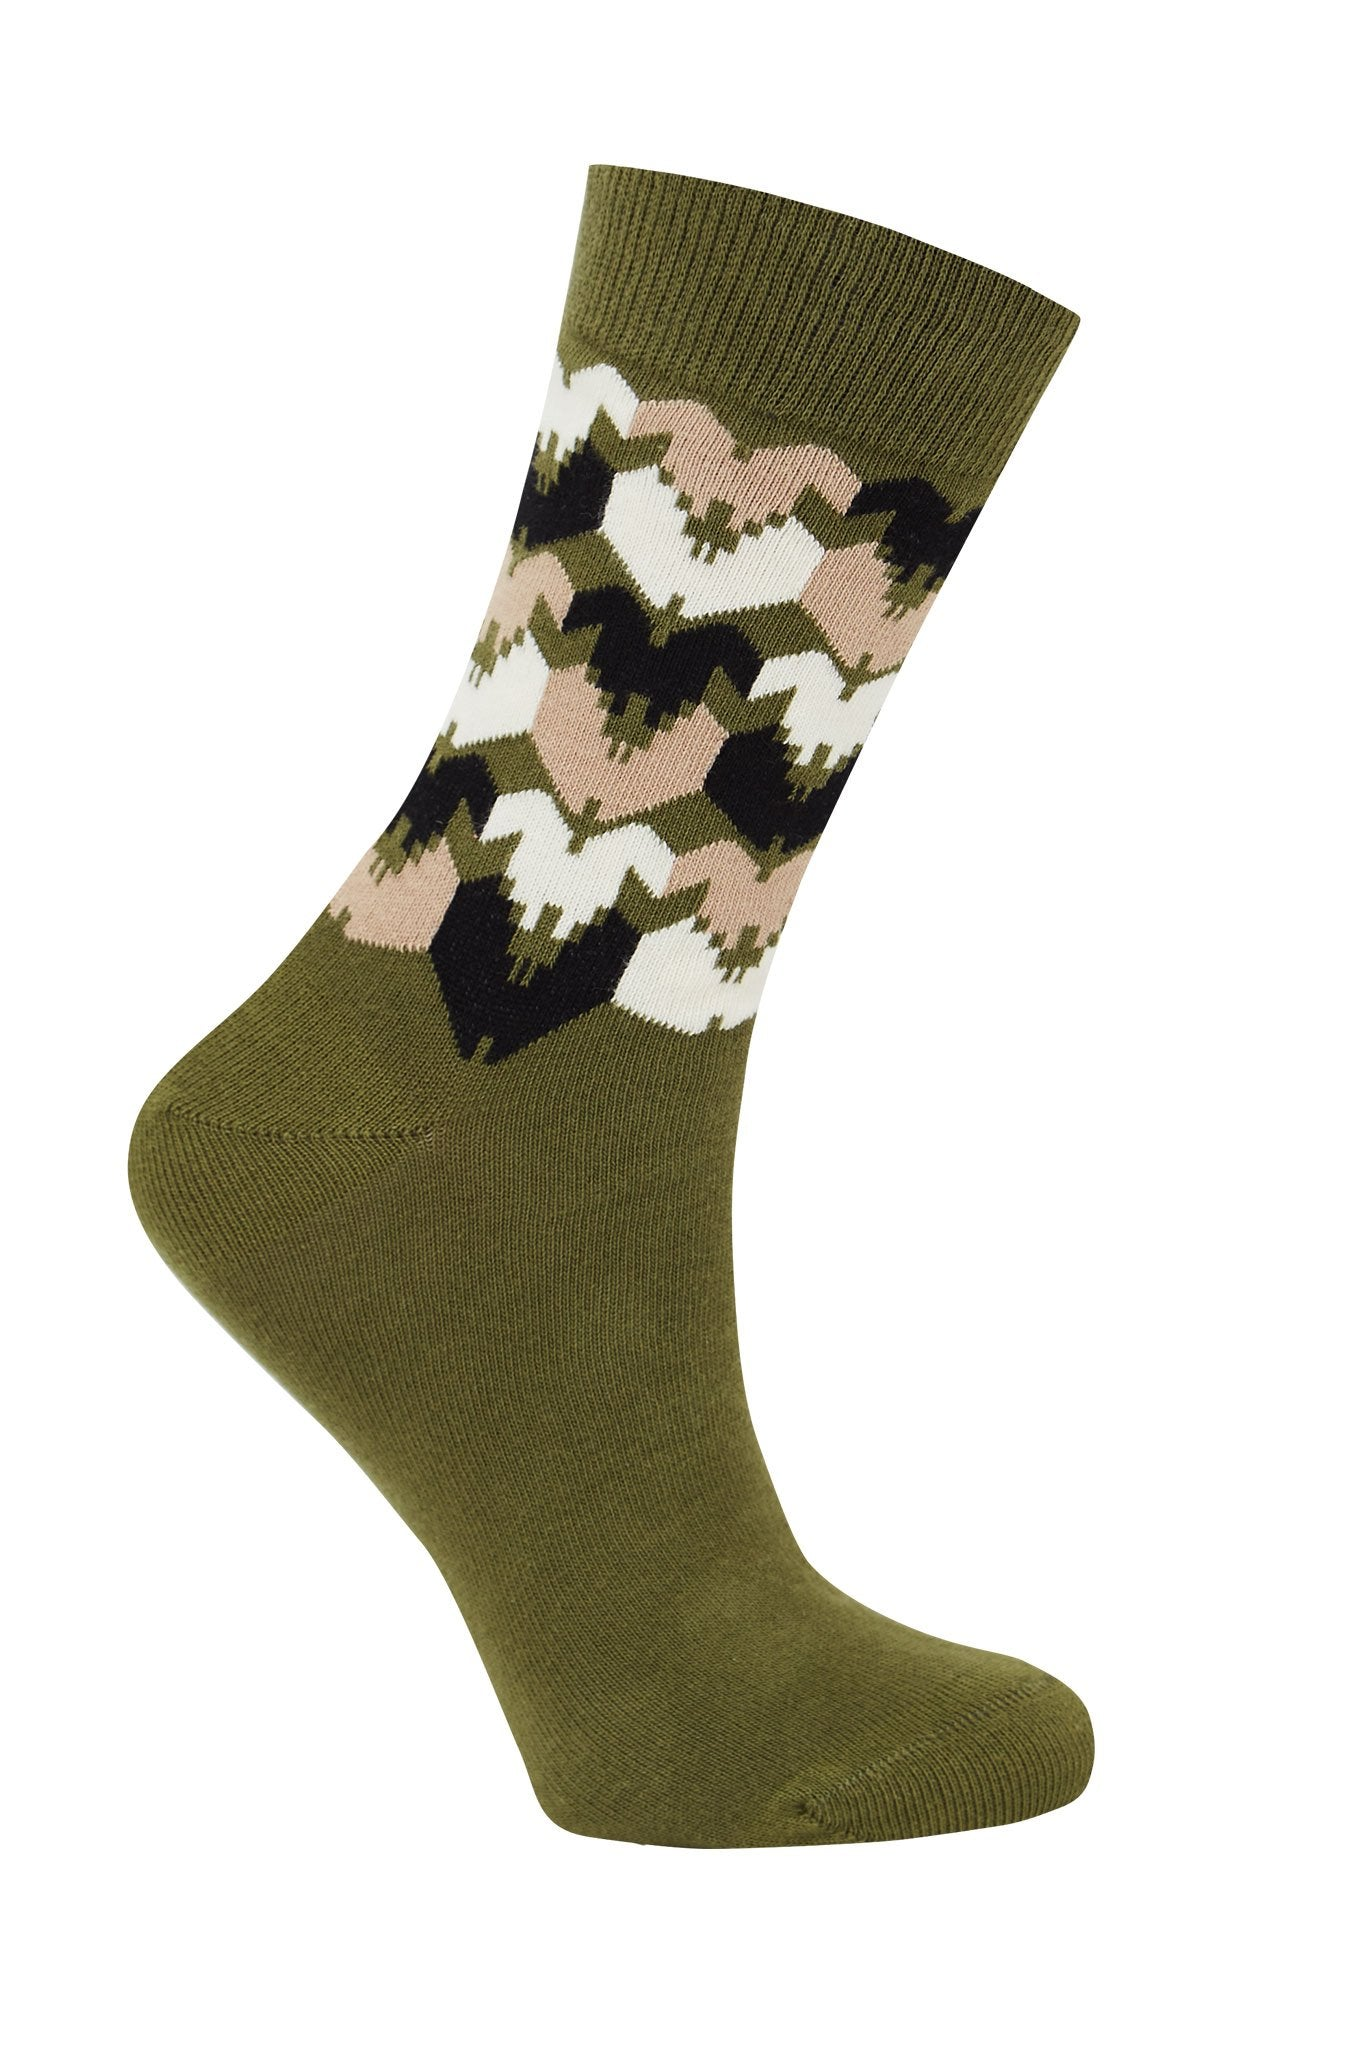 DHAKA Olive - GOTS Organic Cotton Socks